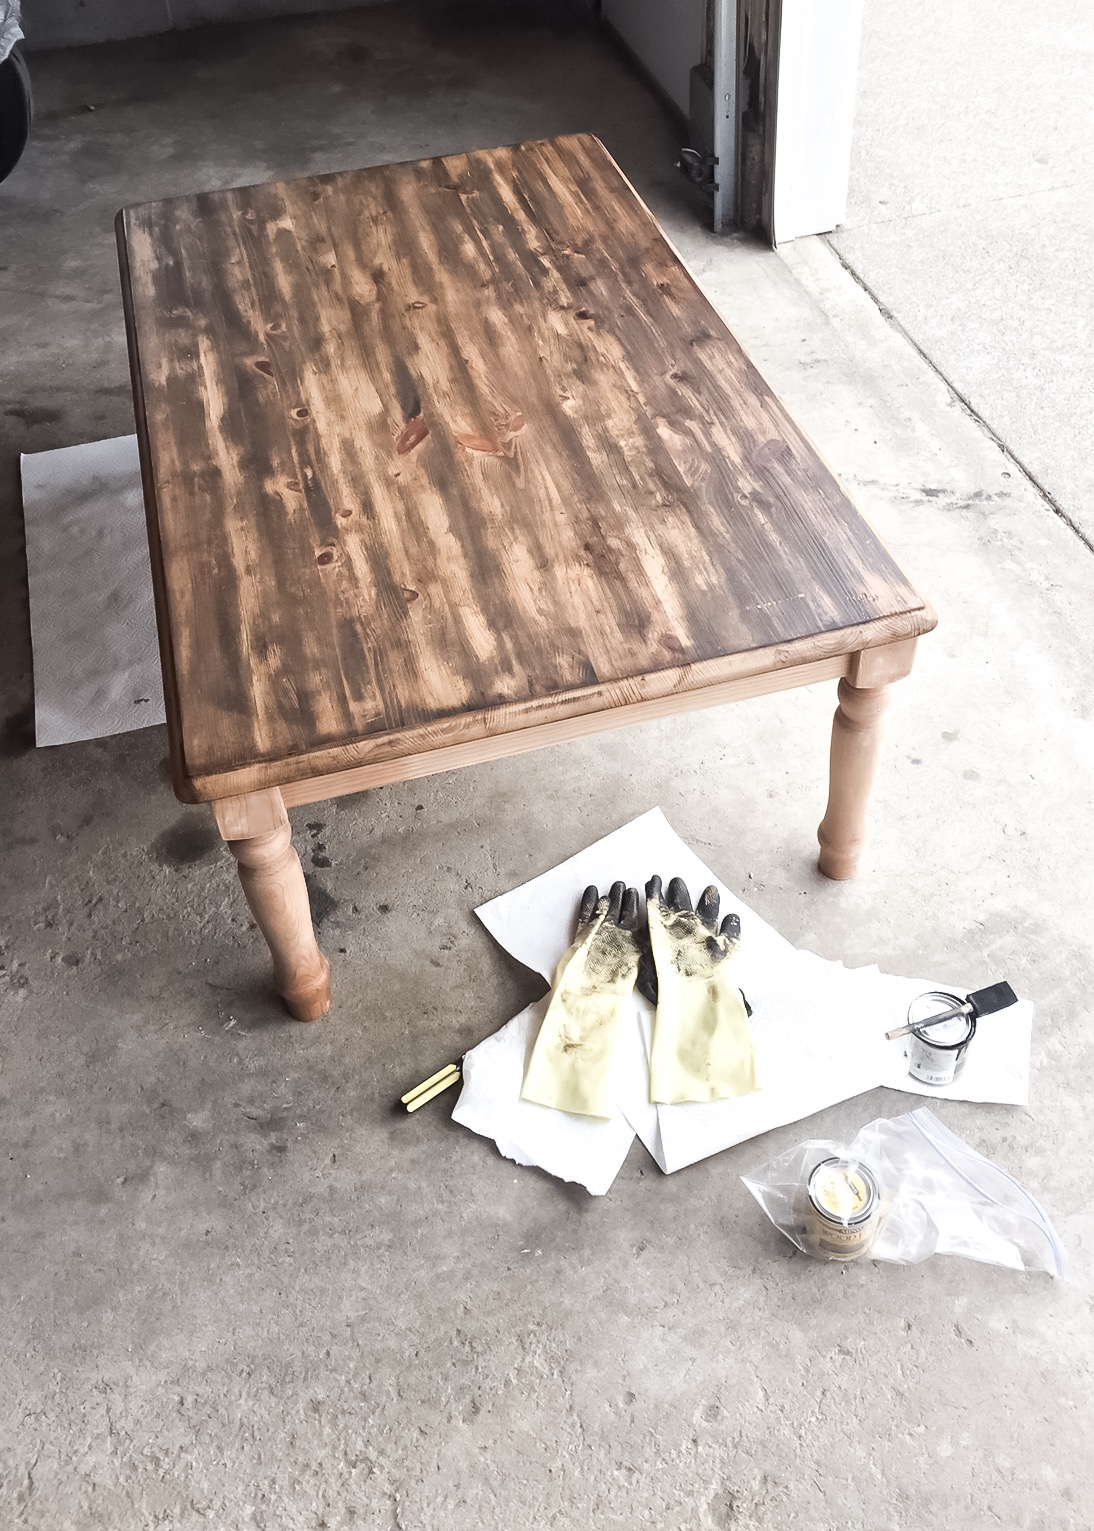 Between the Phases How to Refinish a DIY Farmhouse Coffee Table